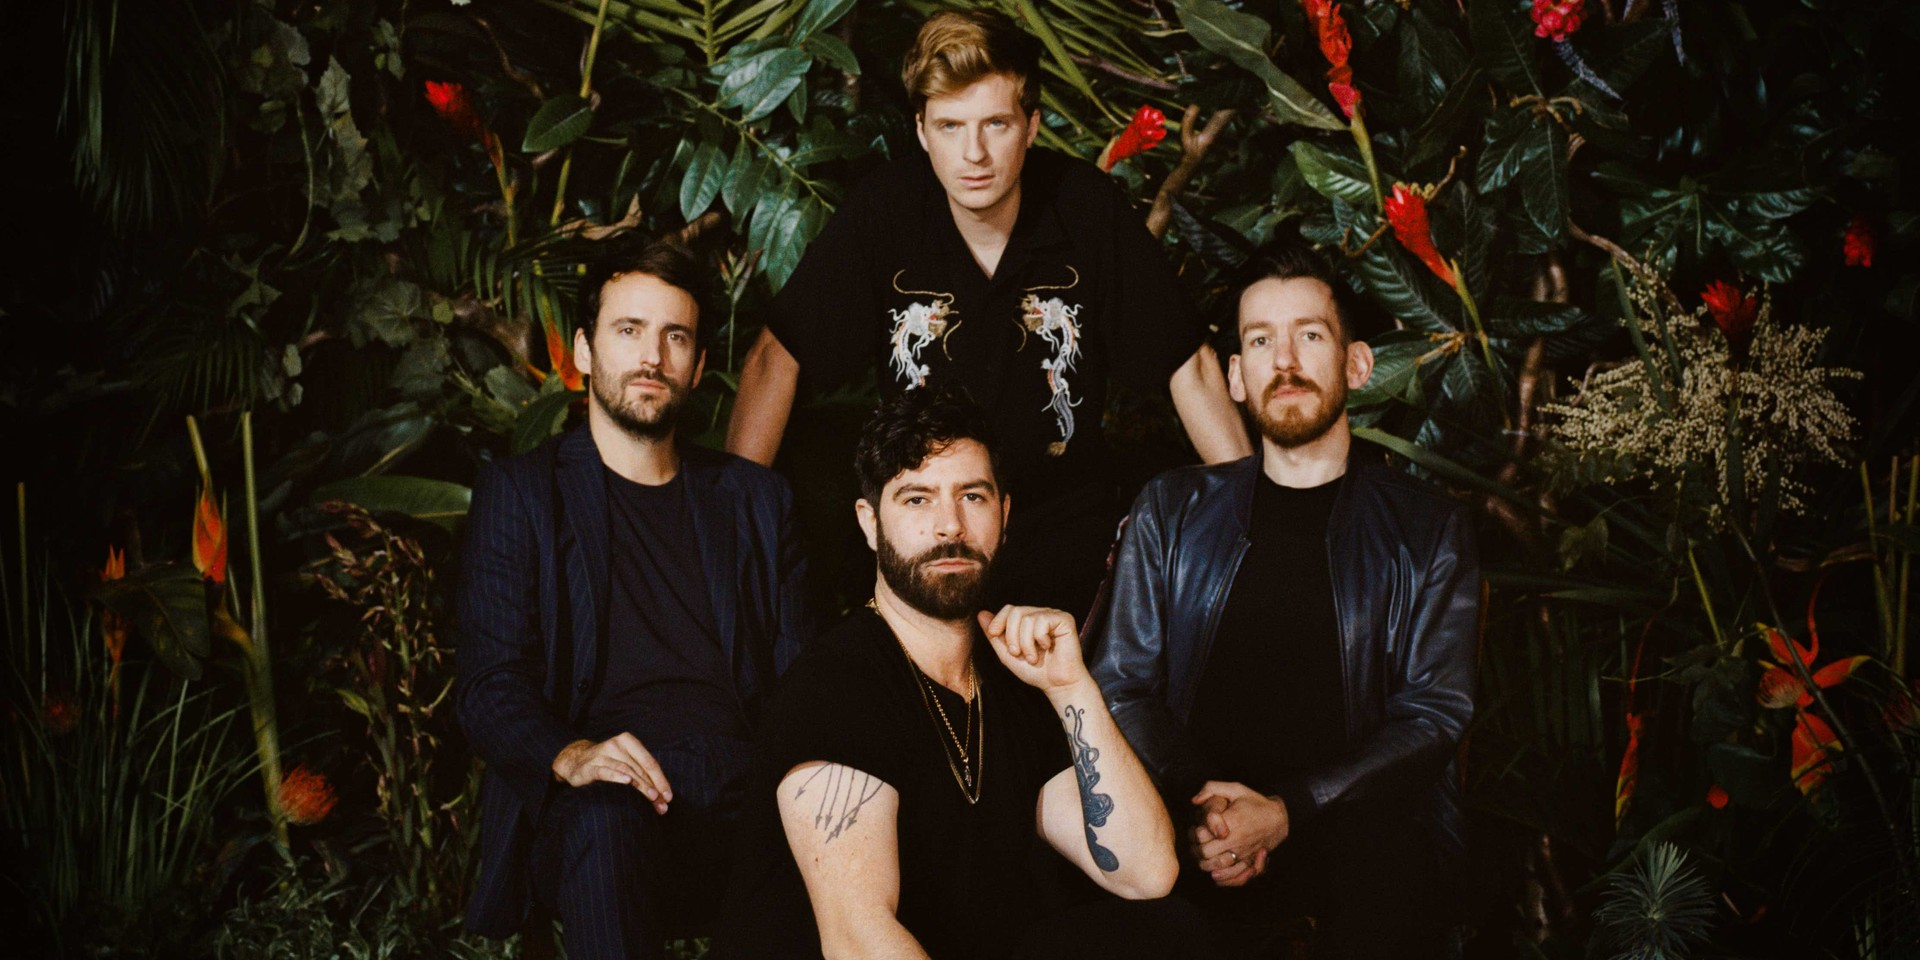 """Foals postpone 2020 Japan tour due to """"uncertainty around COVID-19"""""""